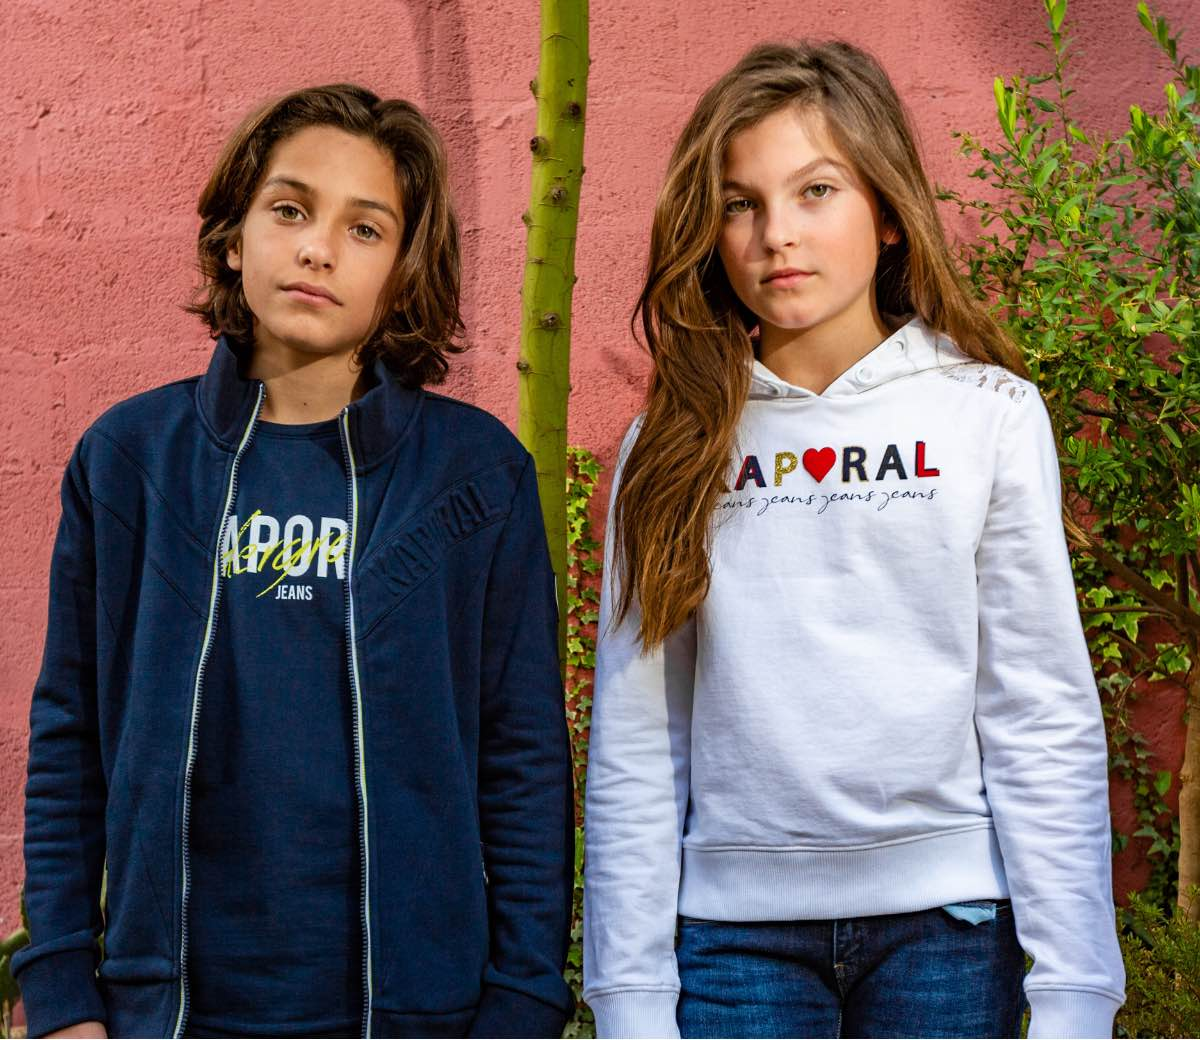 KAPORAL prints